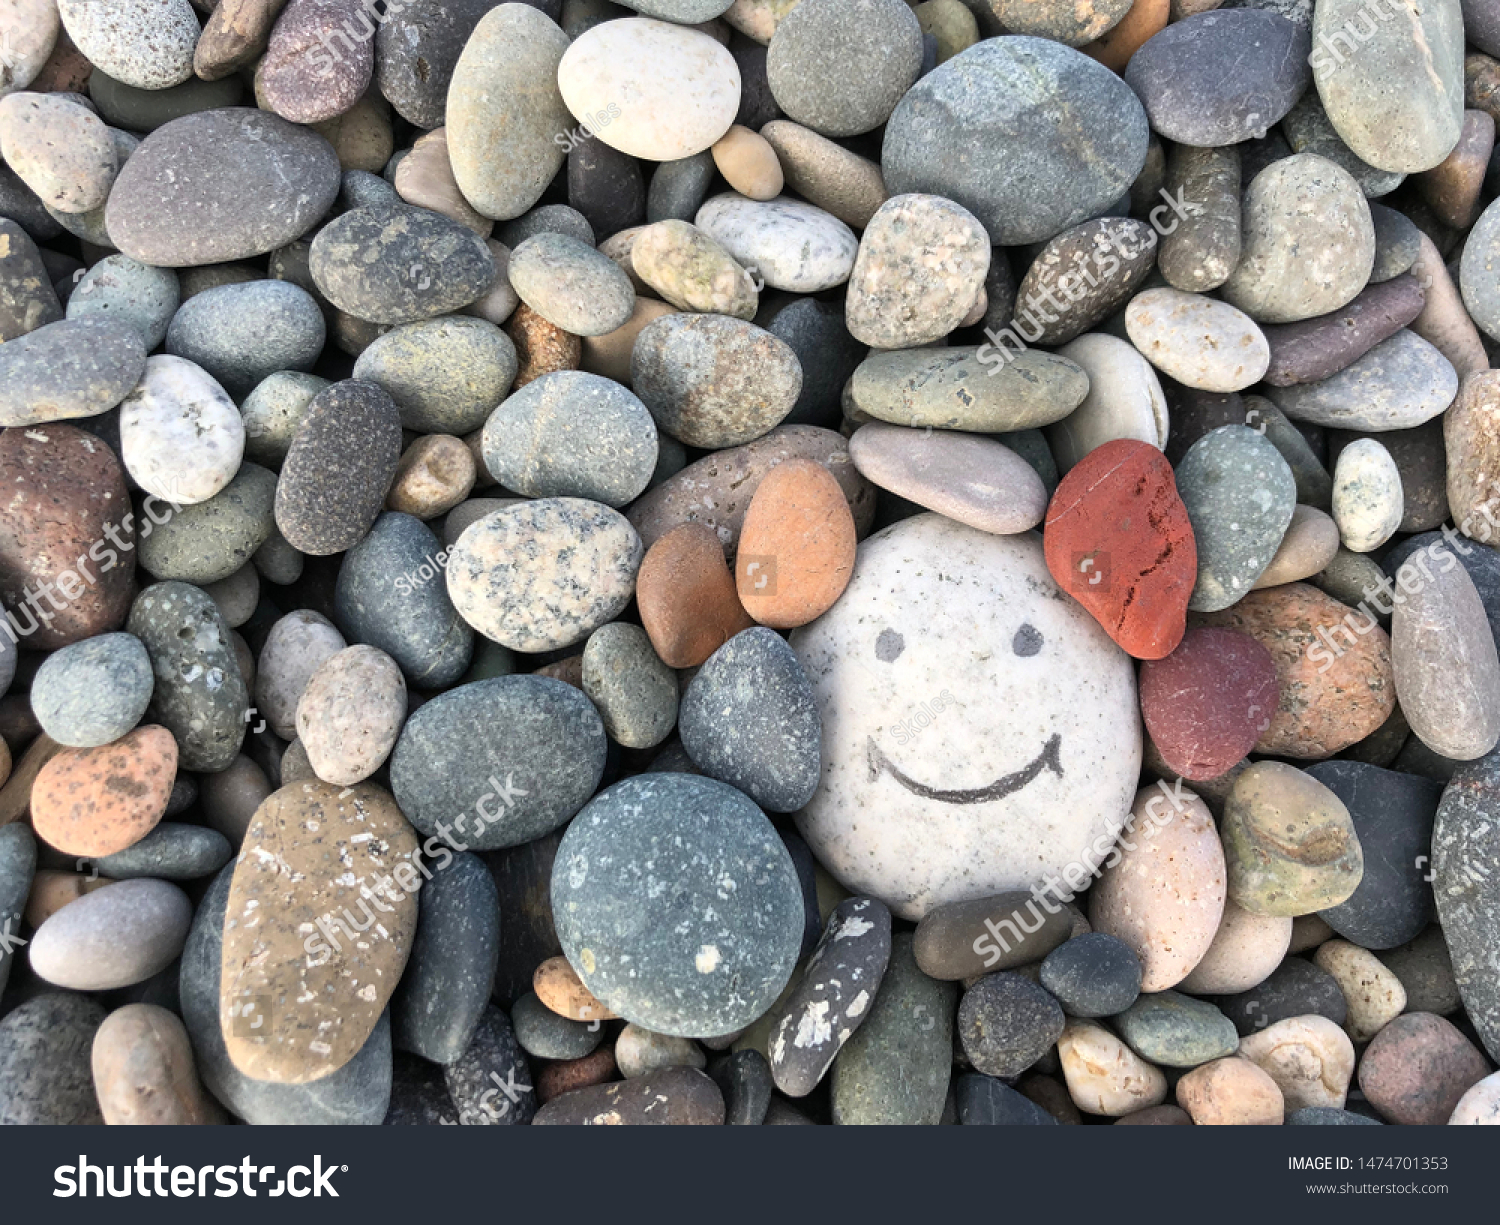 Stone with a painted smile. On the shore, one stone stands out from the others. On a small stone is an image of a happy face. Concept: joy, happiness, positive, kindness. #1474701353